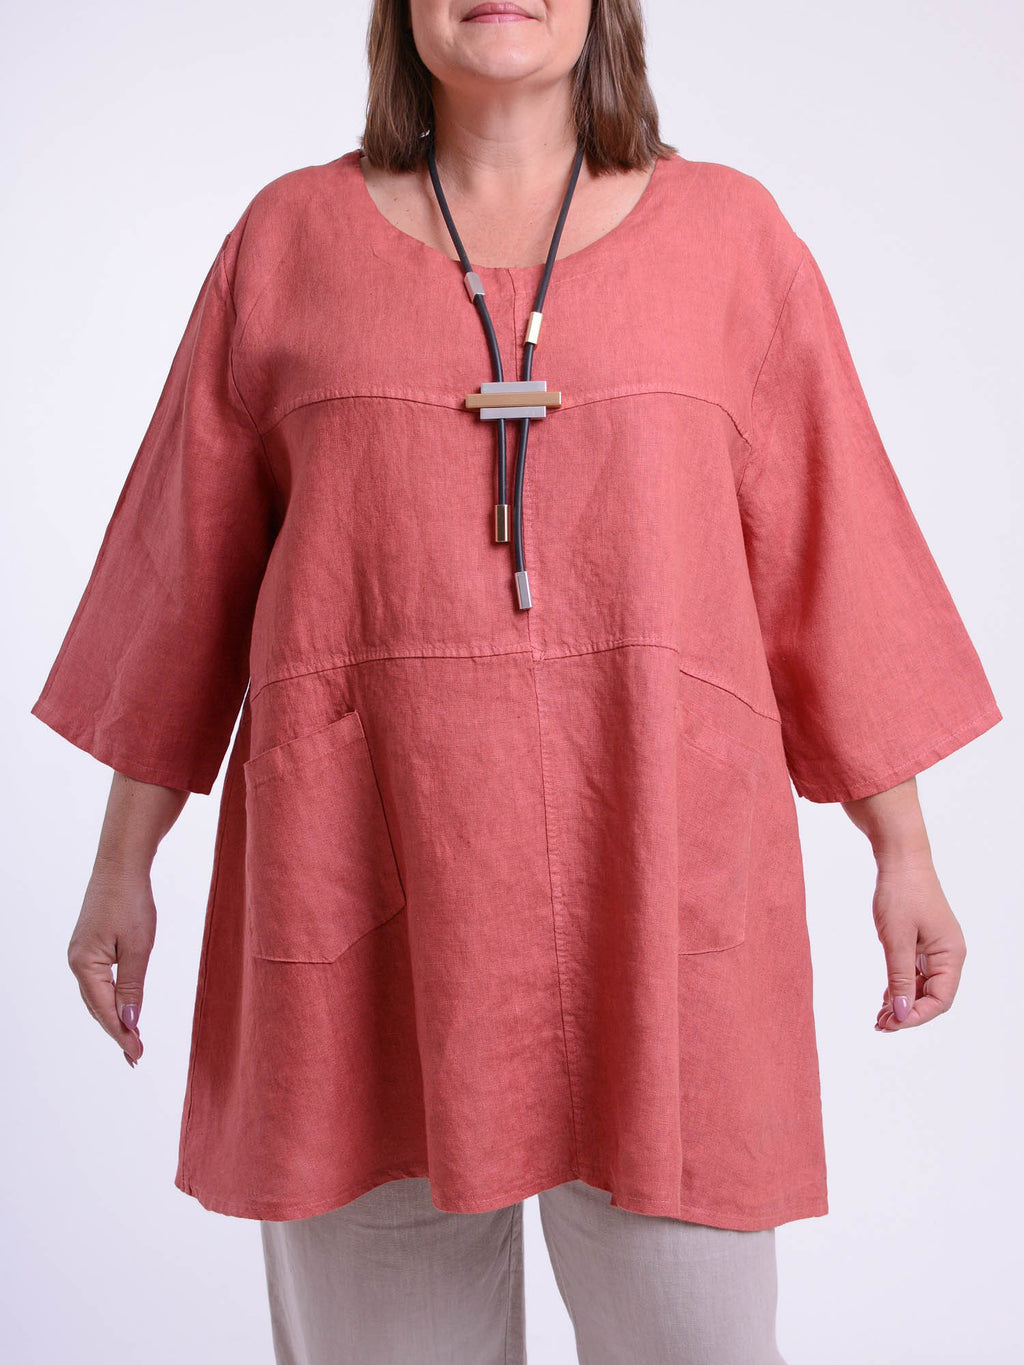 Heavy Linen Tunic - 105151 - Pure Plus Clothing